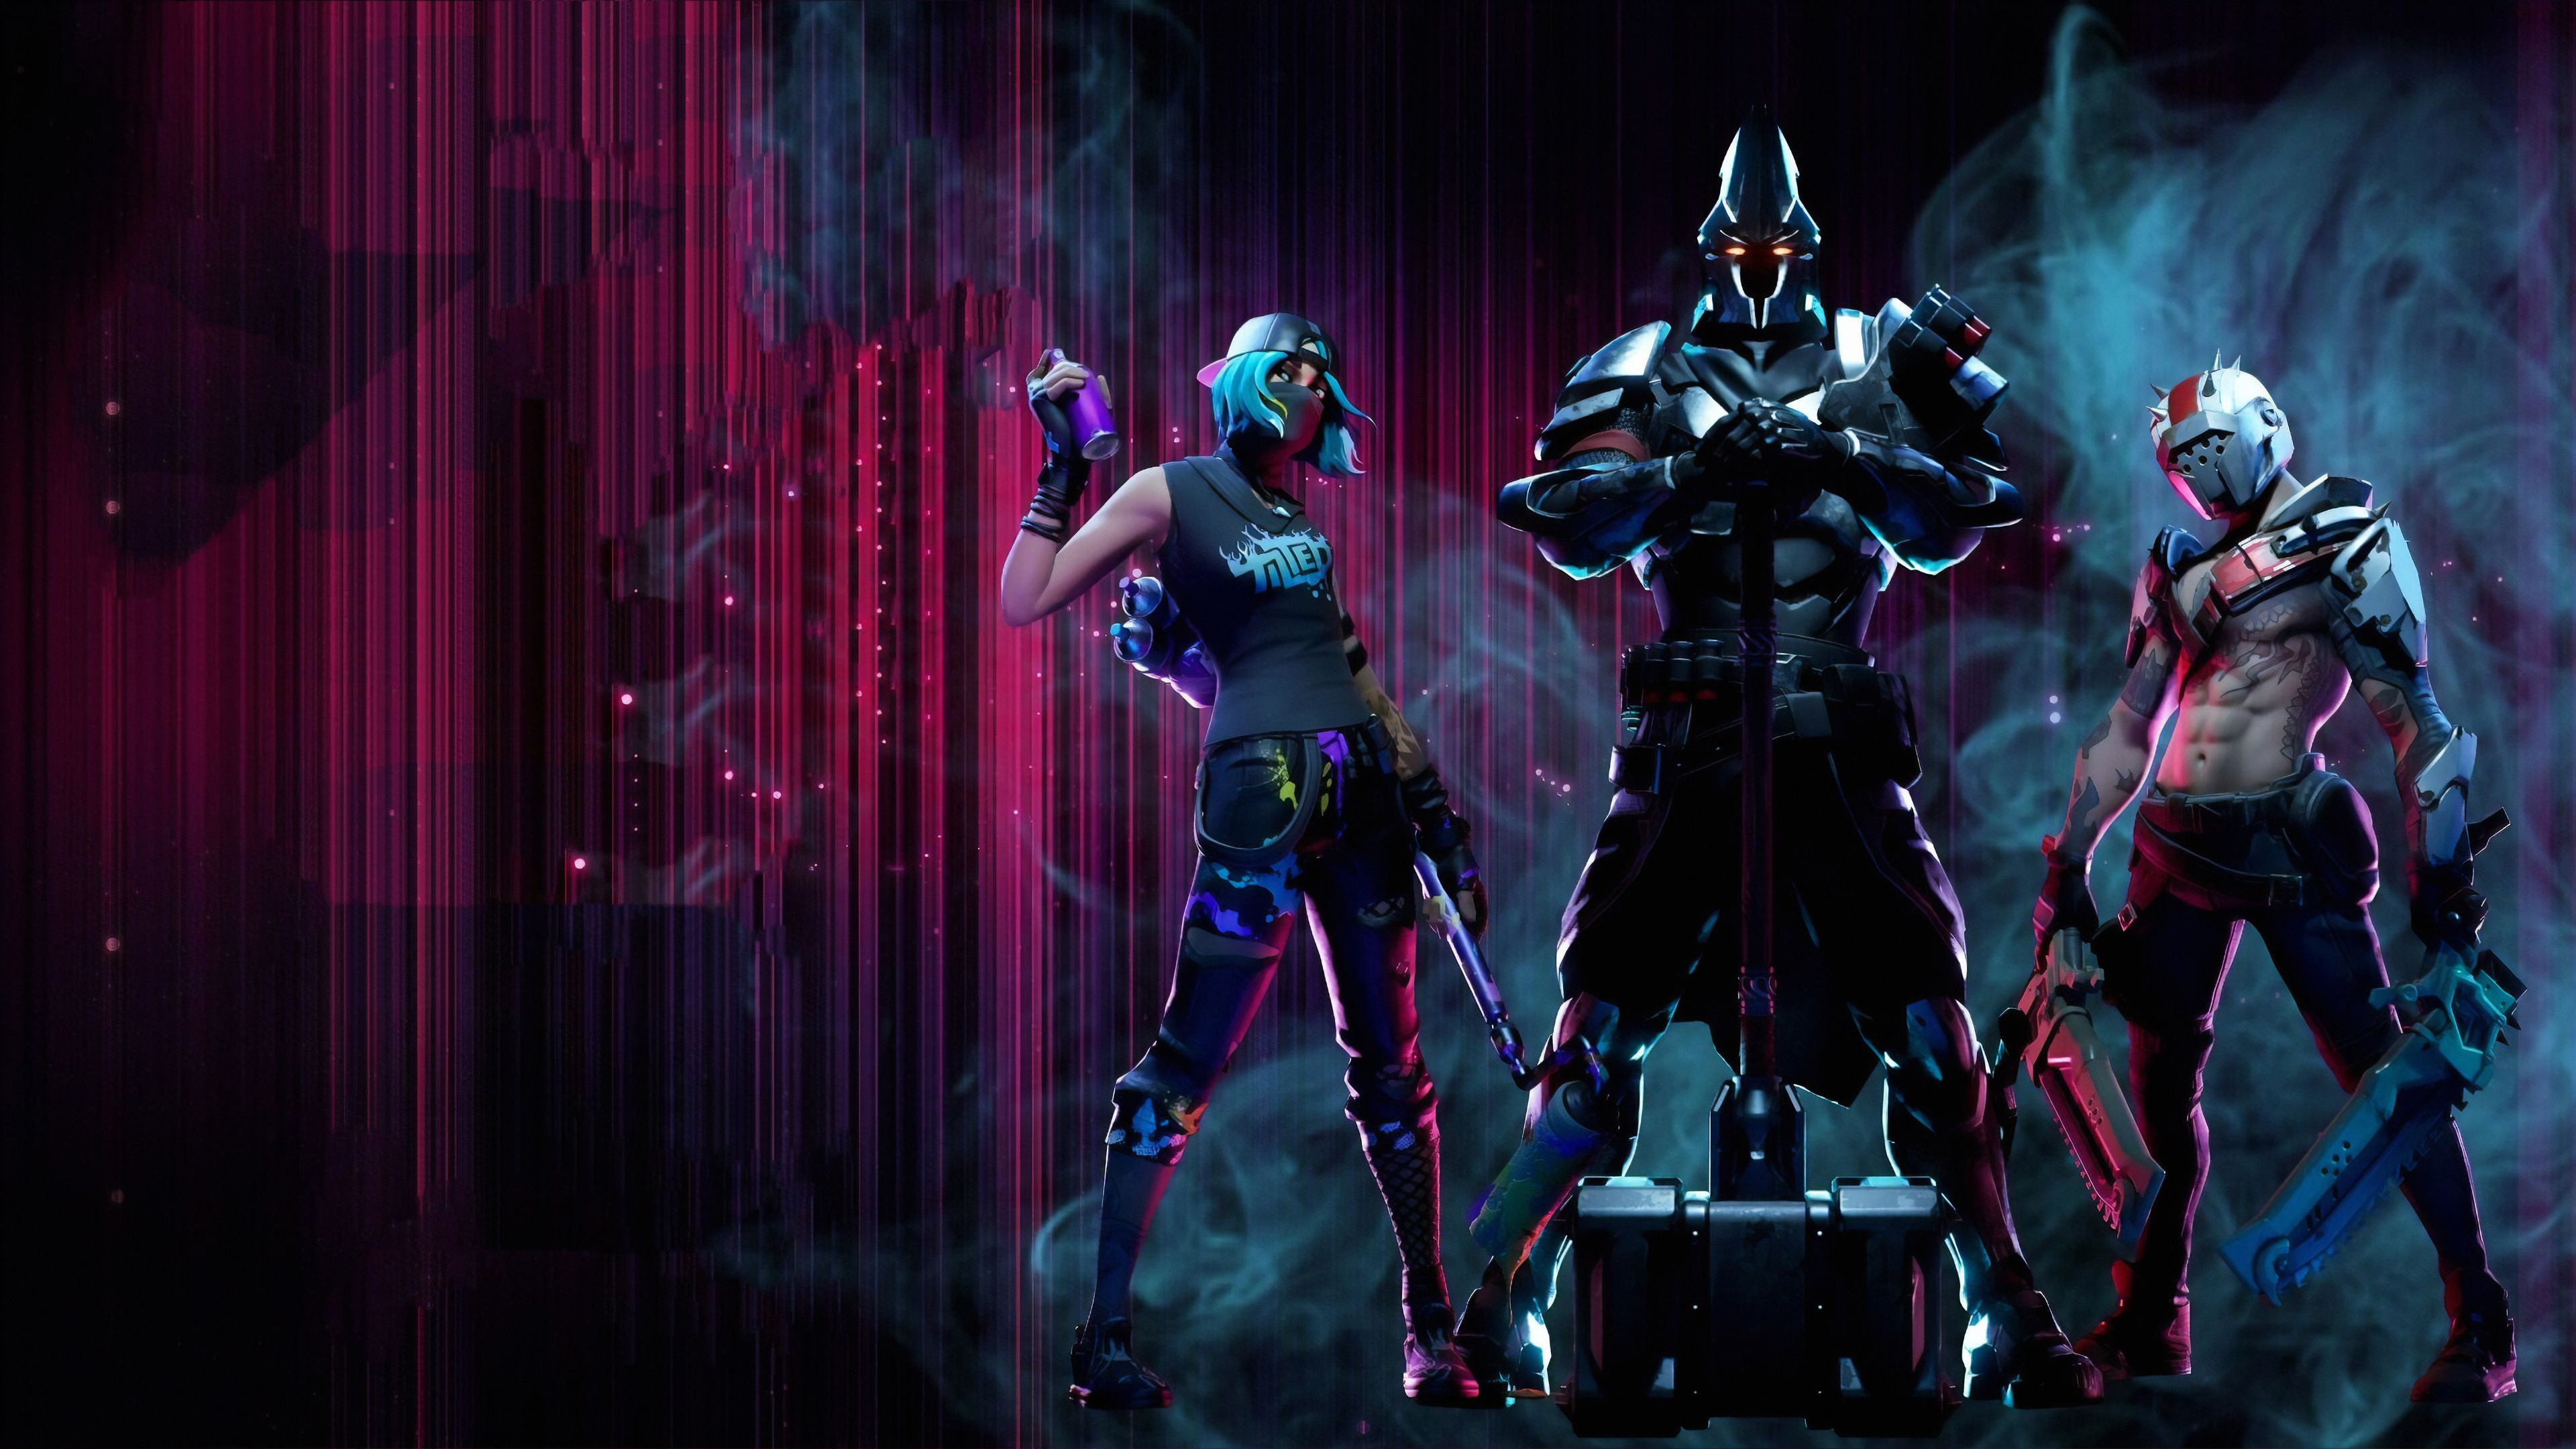 Fortnite 2019 Game hd wallpapers games wallpapers fortnite 3840x2160